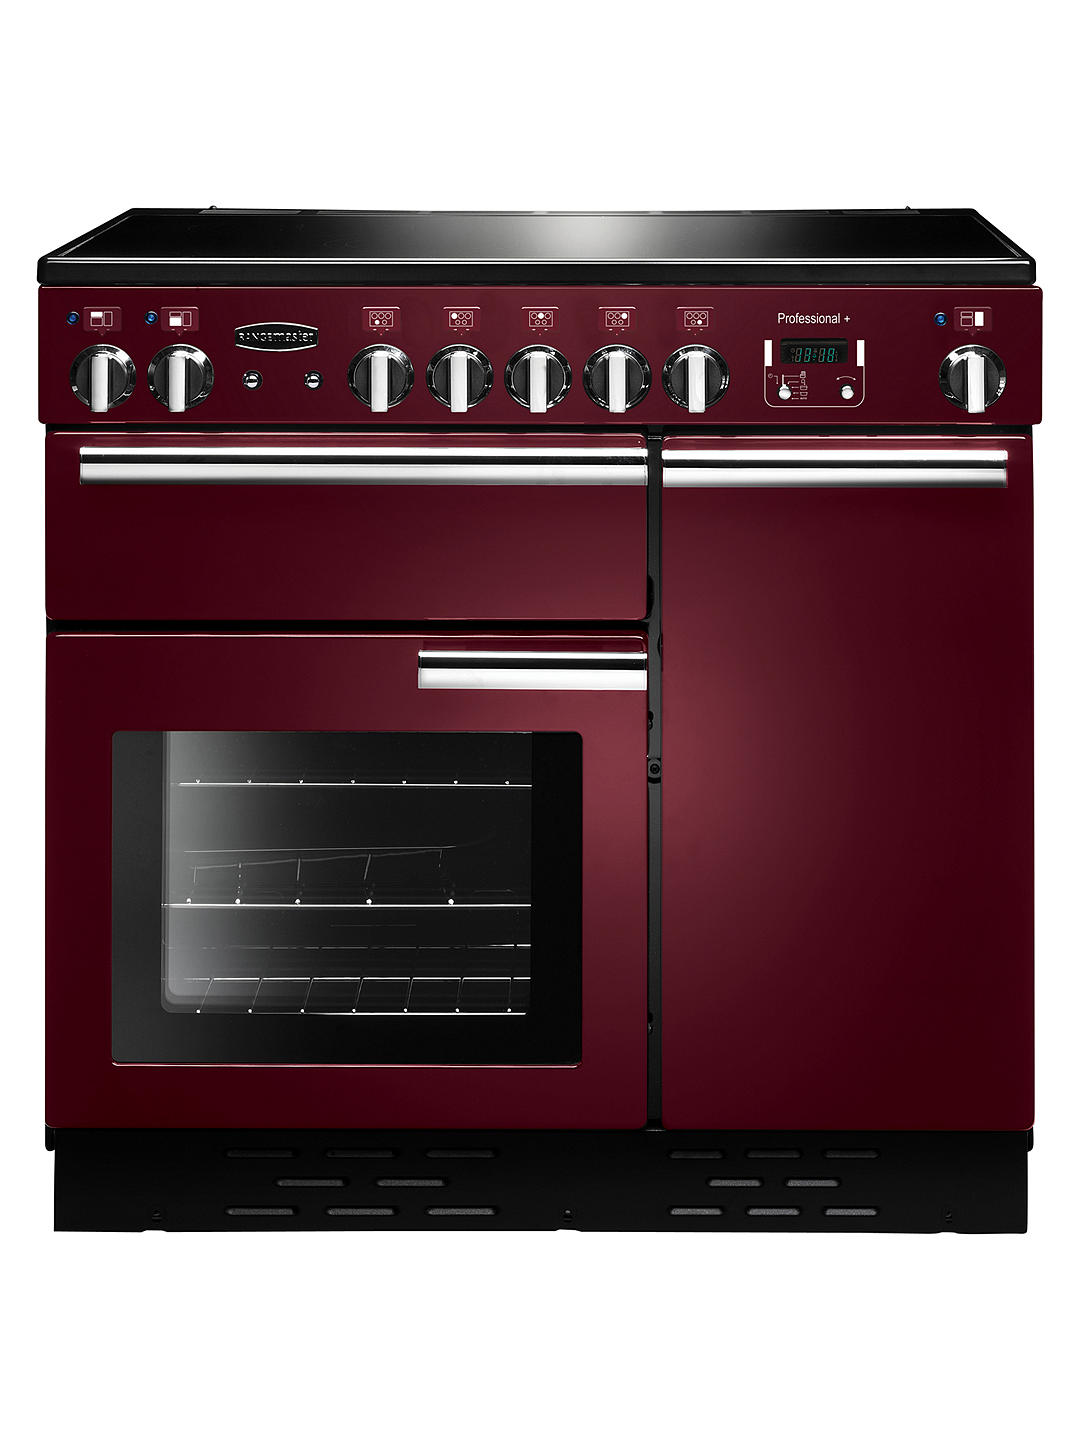 Buy Rangemaster Professional + 90 Electric Range Cooker, Cranberry/Chrome Trim Online at johnlewis.com